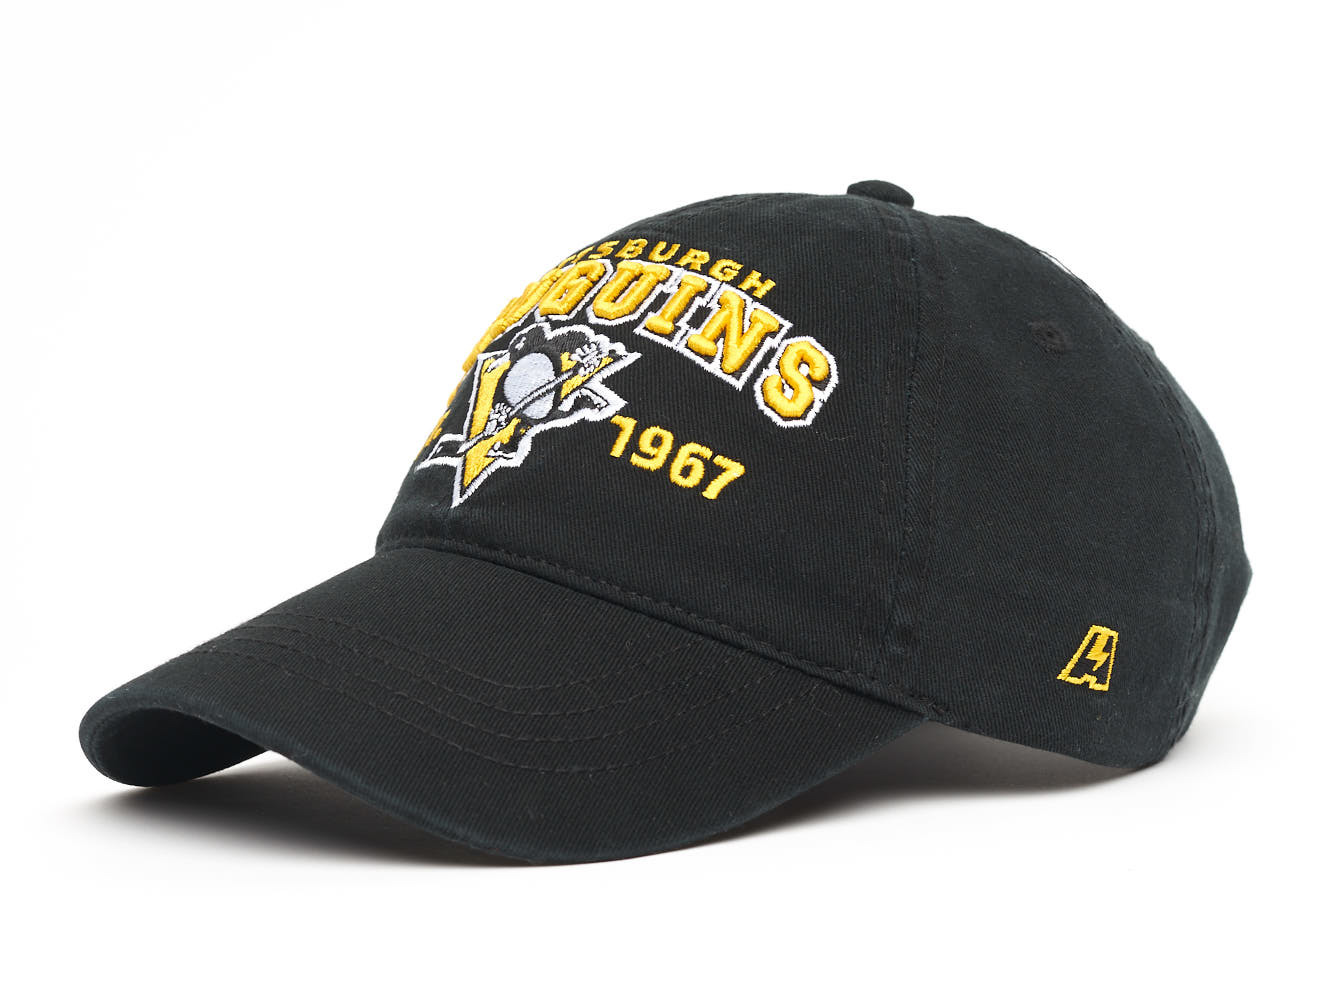 Бейсболка NHL Pittsburgh Penguins est. 1967 (подростковая)